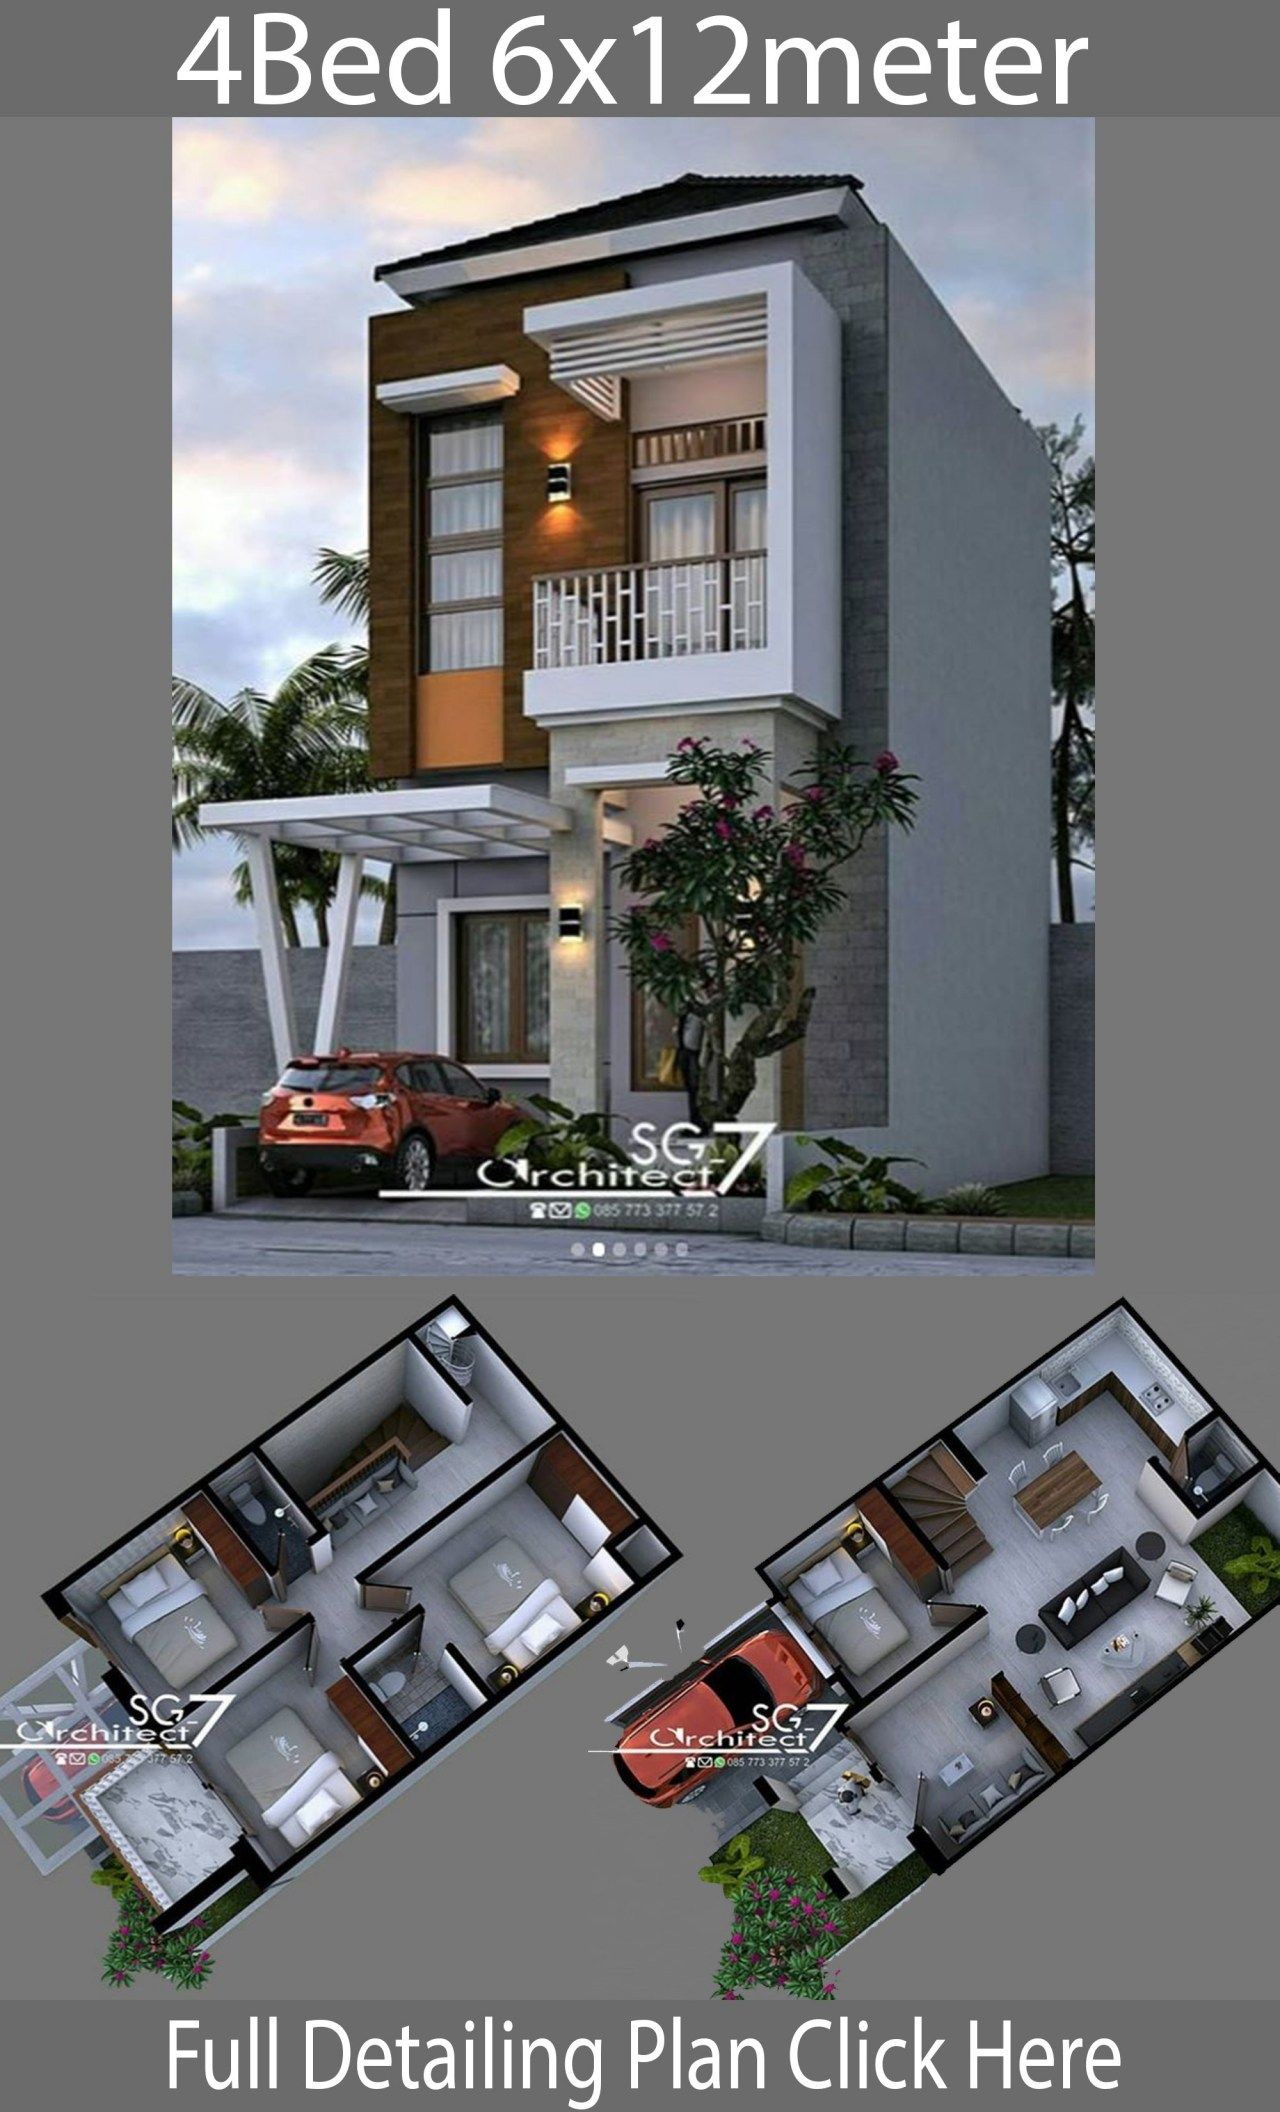 4 Bedrooms Home Design Plan 6x12m Home Ideas Minimalist House Design Small House Design Plans Home Design Plan